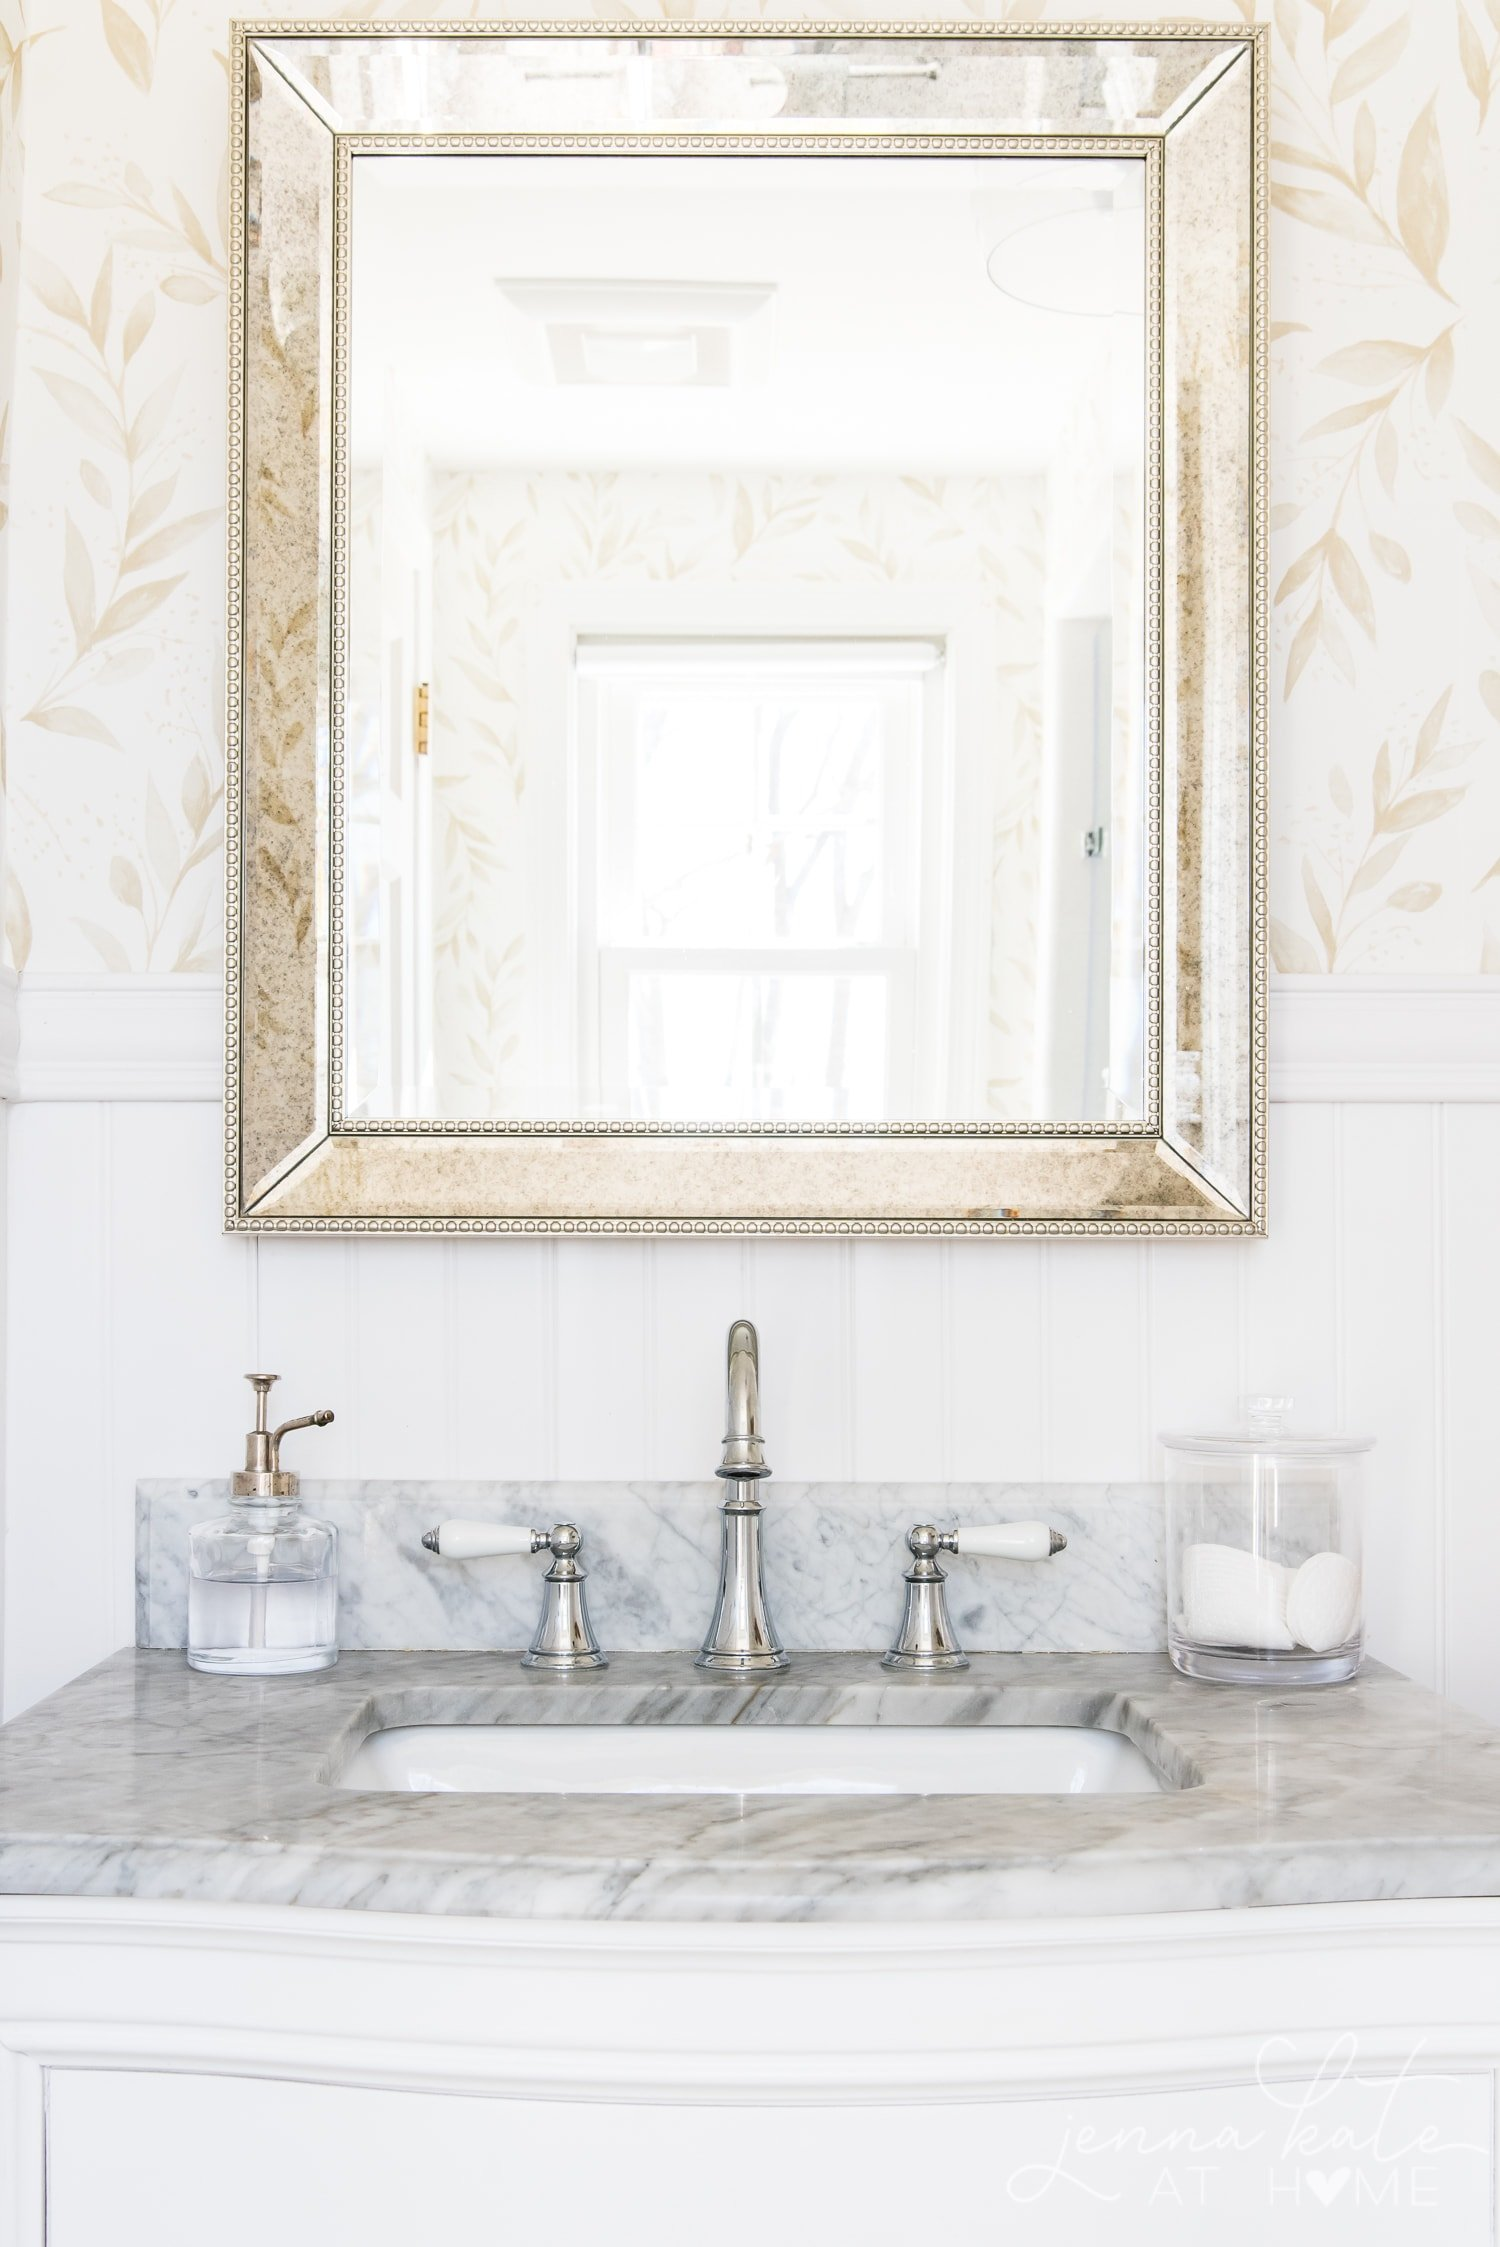 Reflection of bathroom in the mirror over the marble topped vanity with chrome faucets.